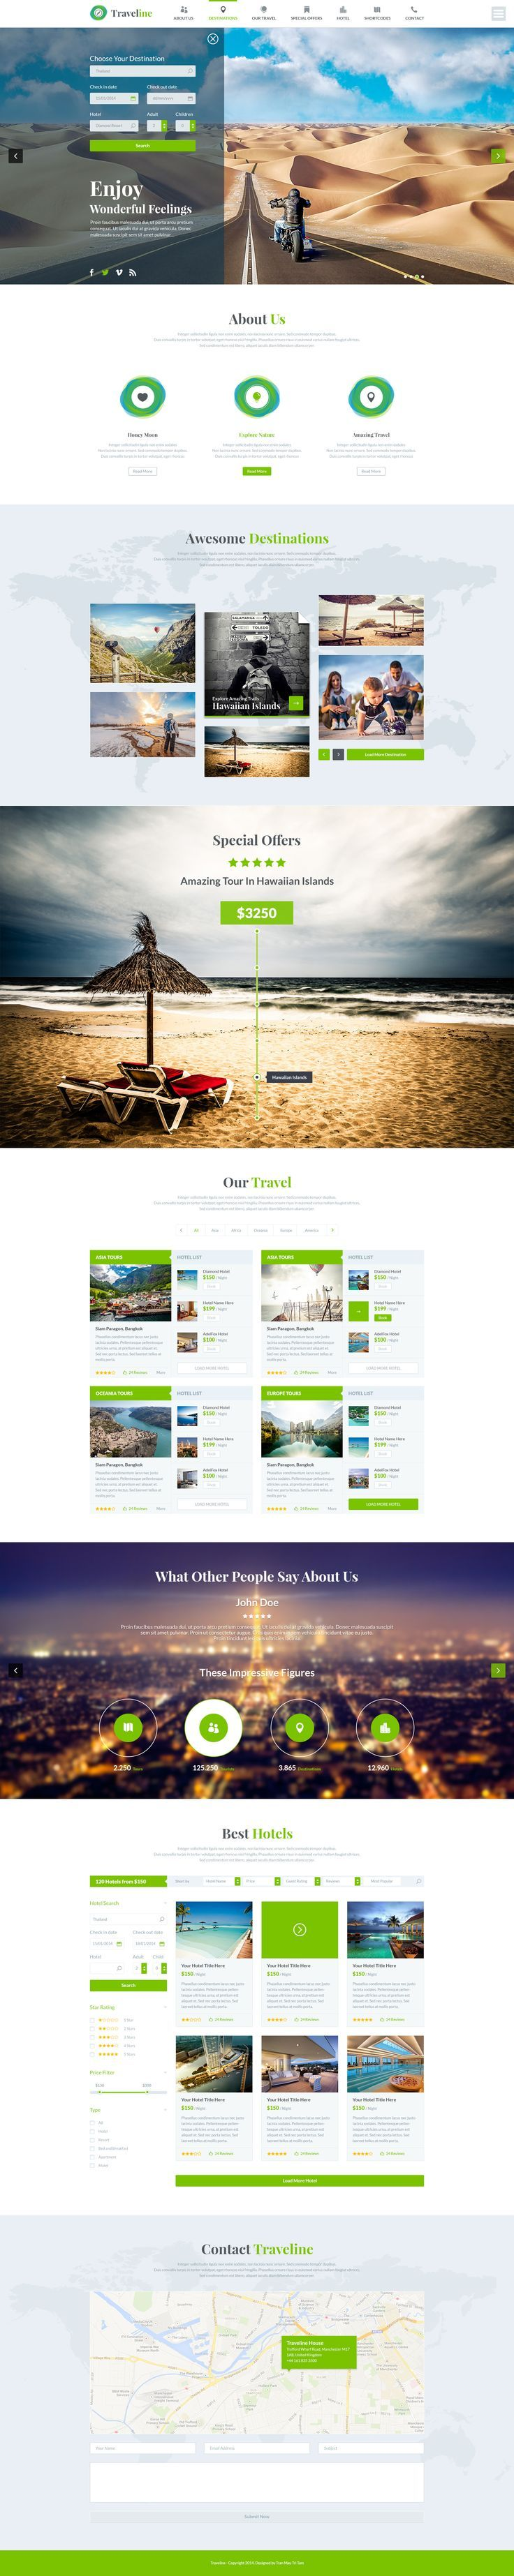 Traveline | Booking PSD Template. If you like UX, design, or design thinking, check out theuxblog.com